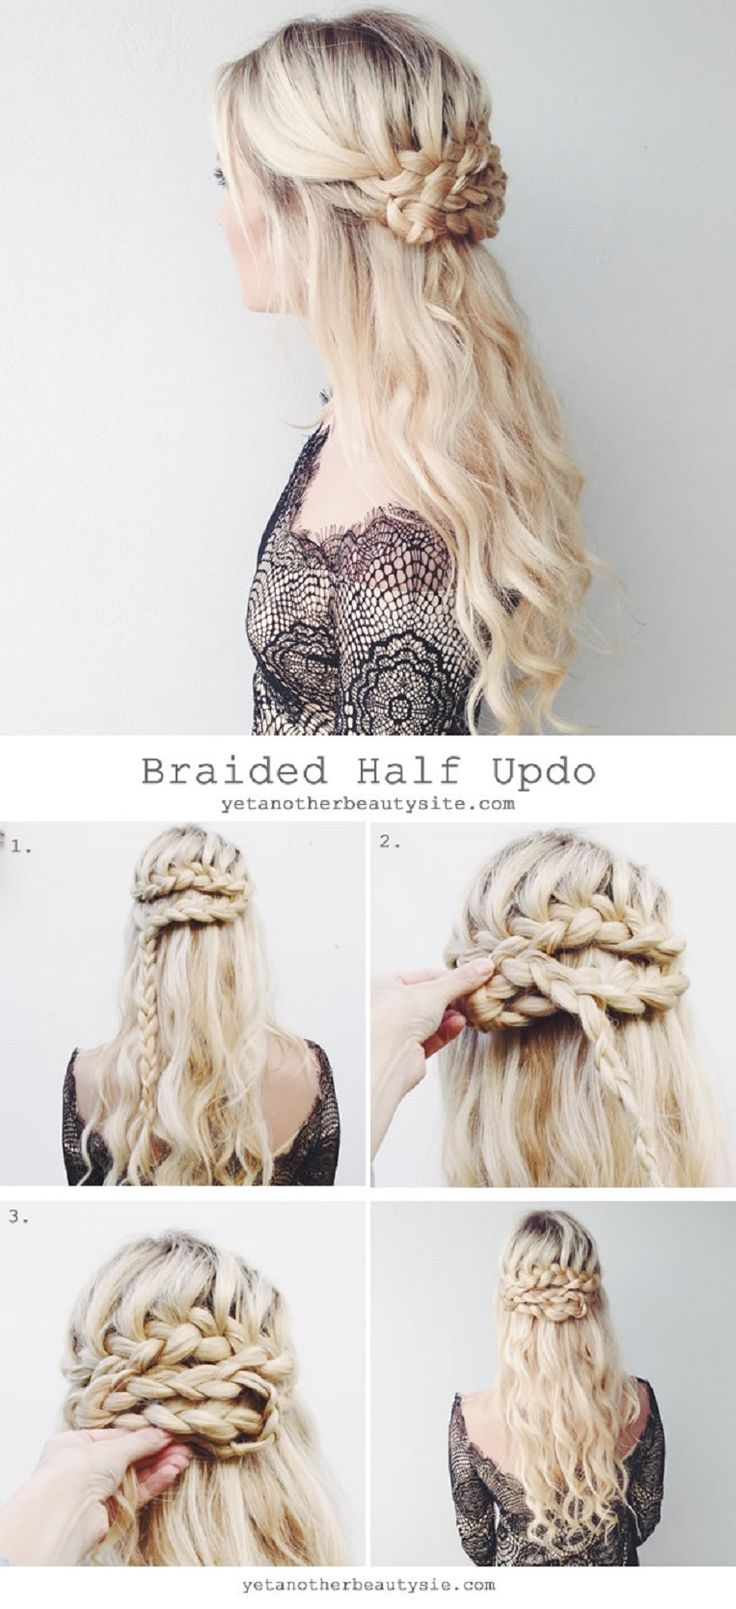 44 best hair do\'s images on Pinterest | Hairstyles, Braids and Make up